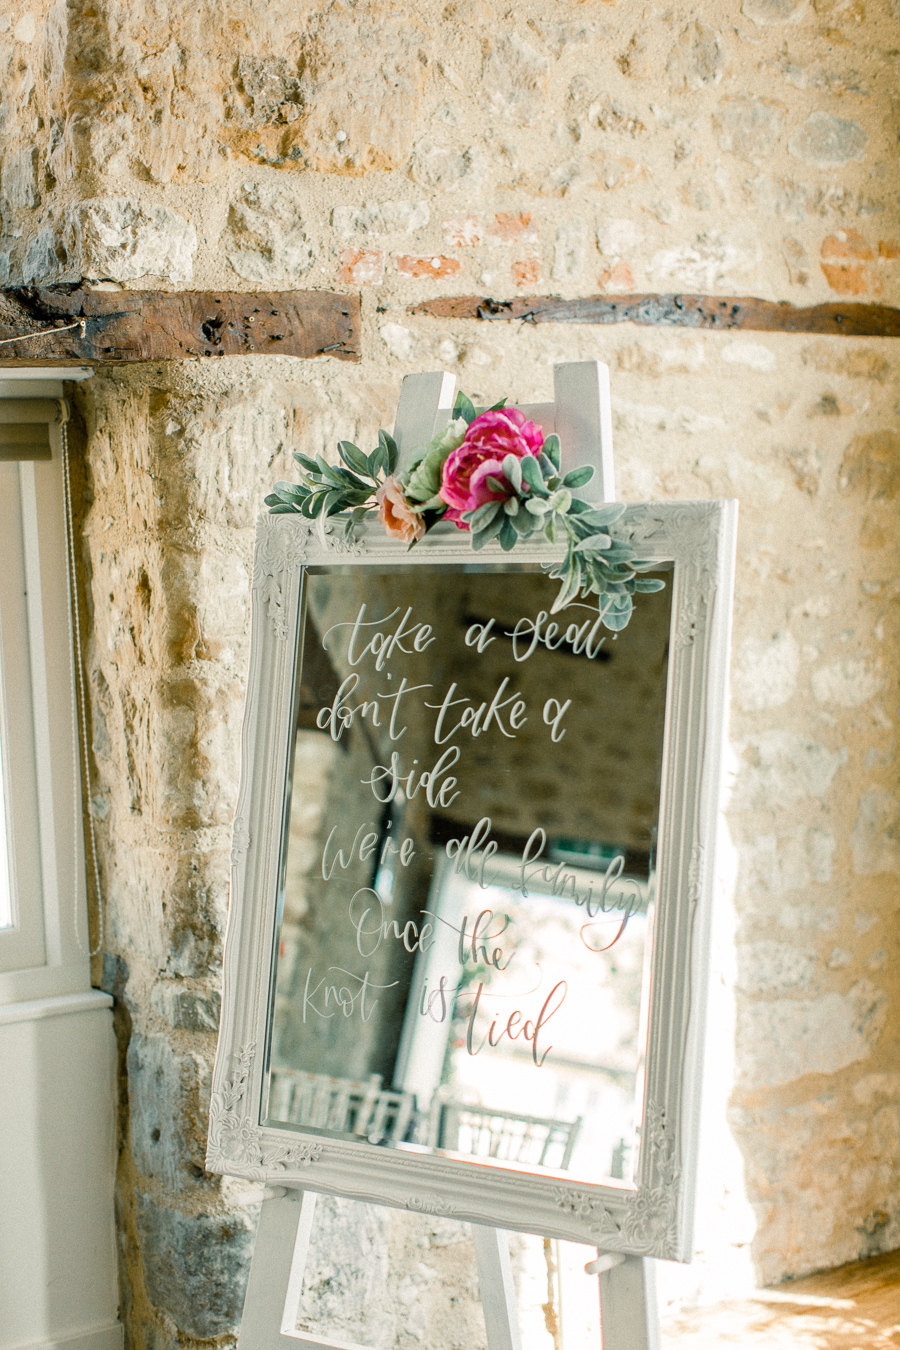 Jordans Courtyard rustic wedding styling ideas with images by Liz Baker Photography (5)